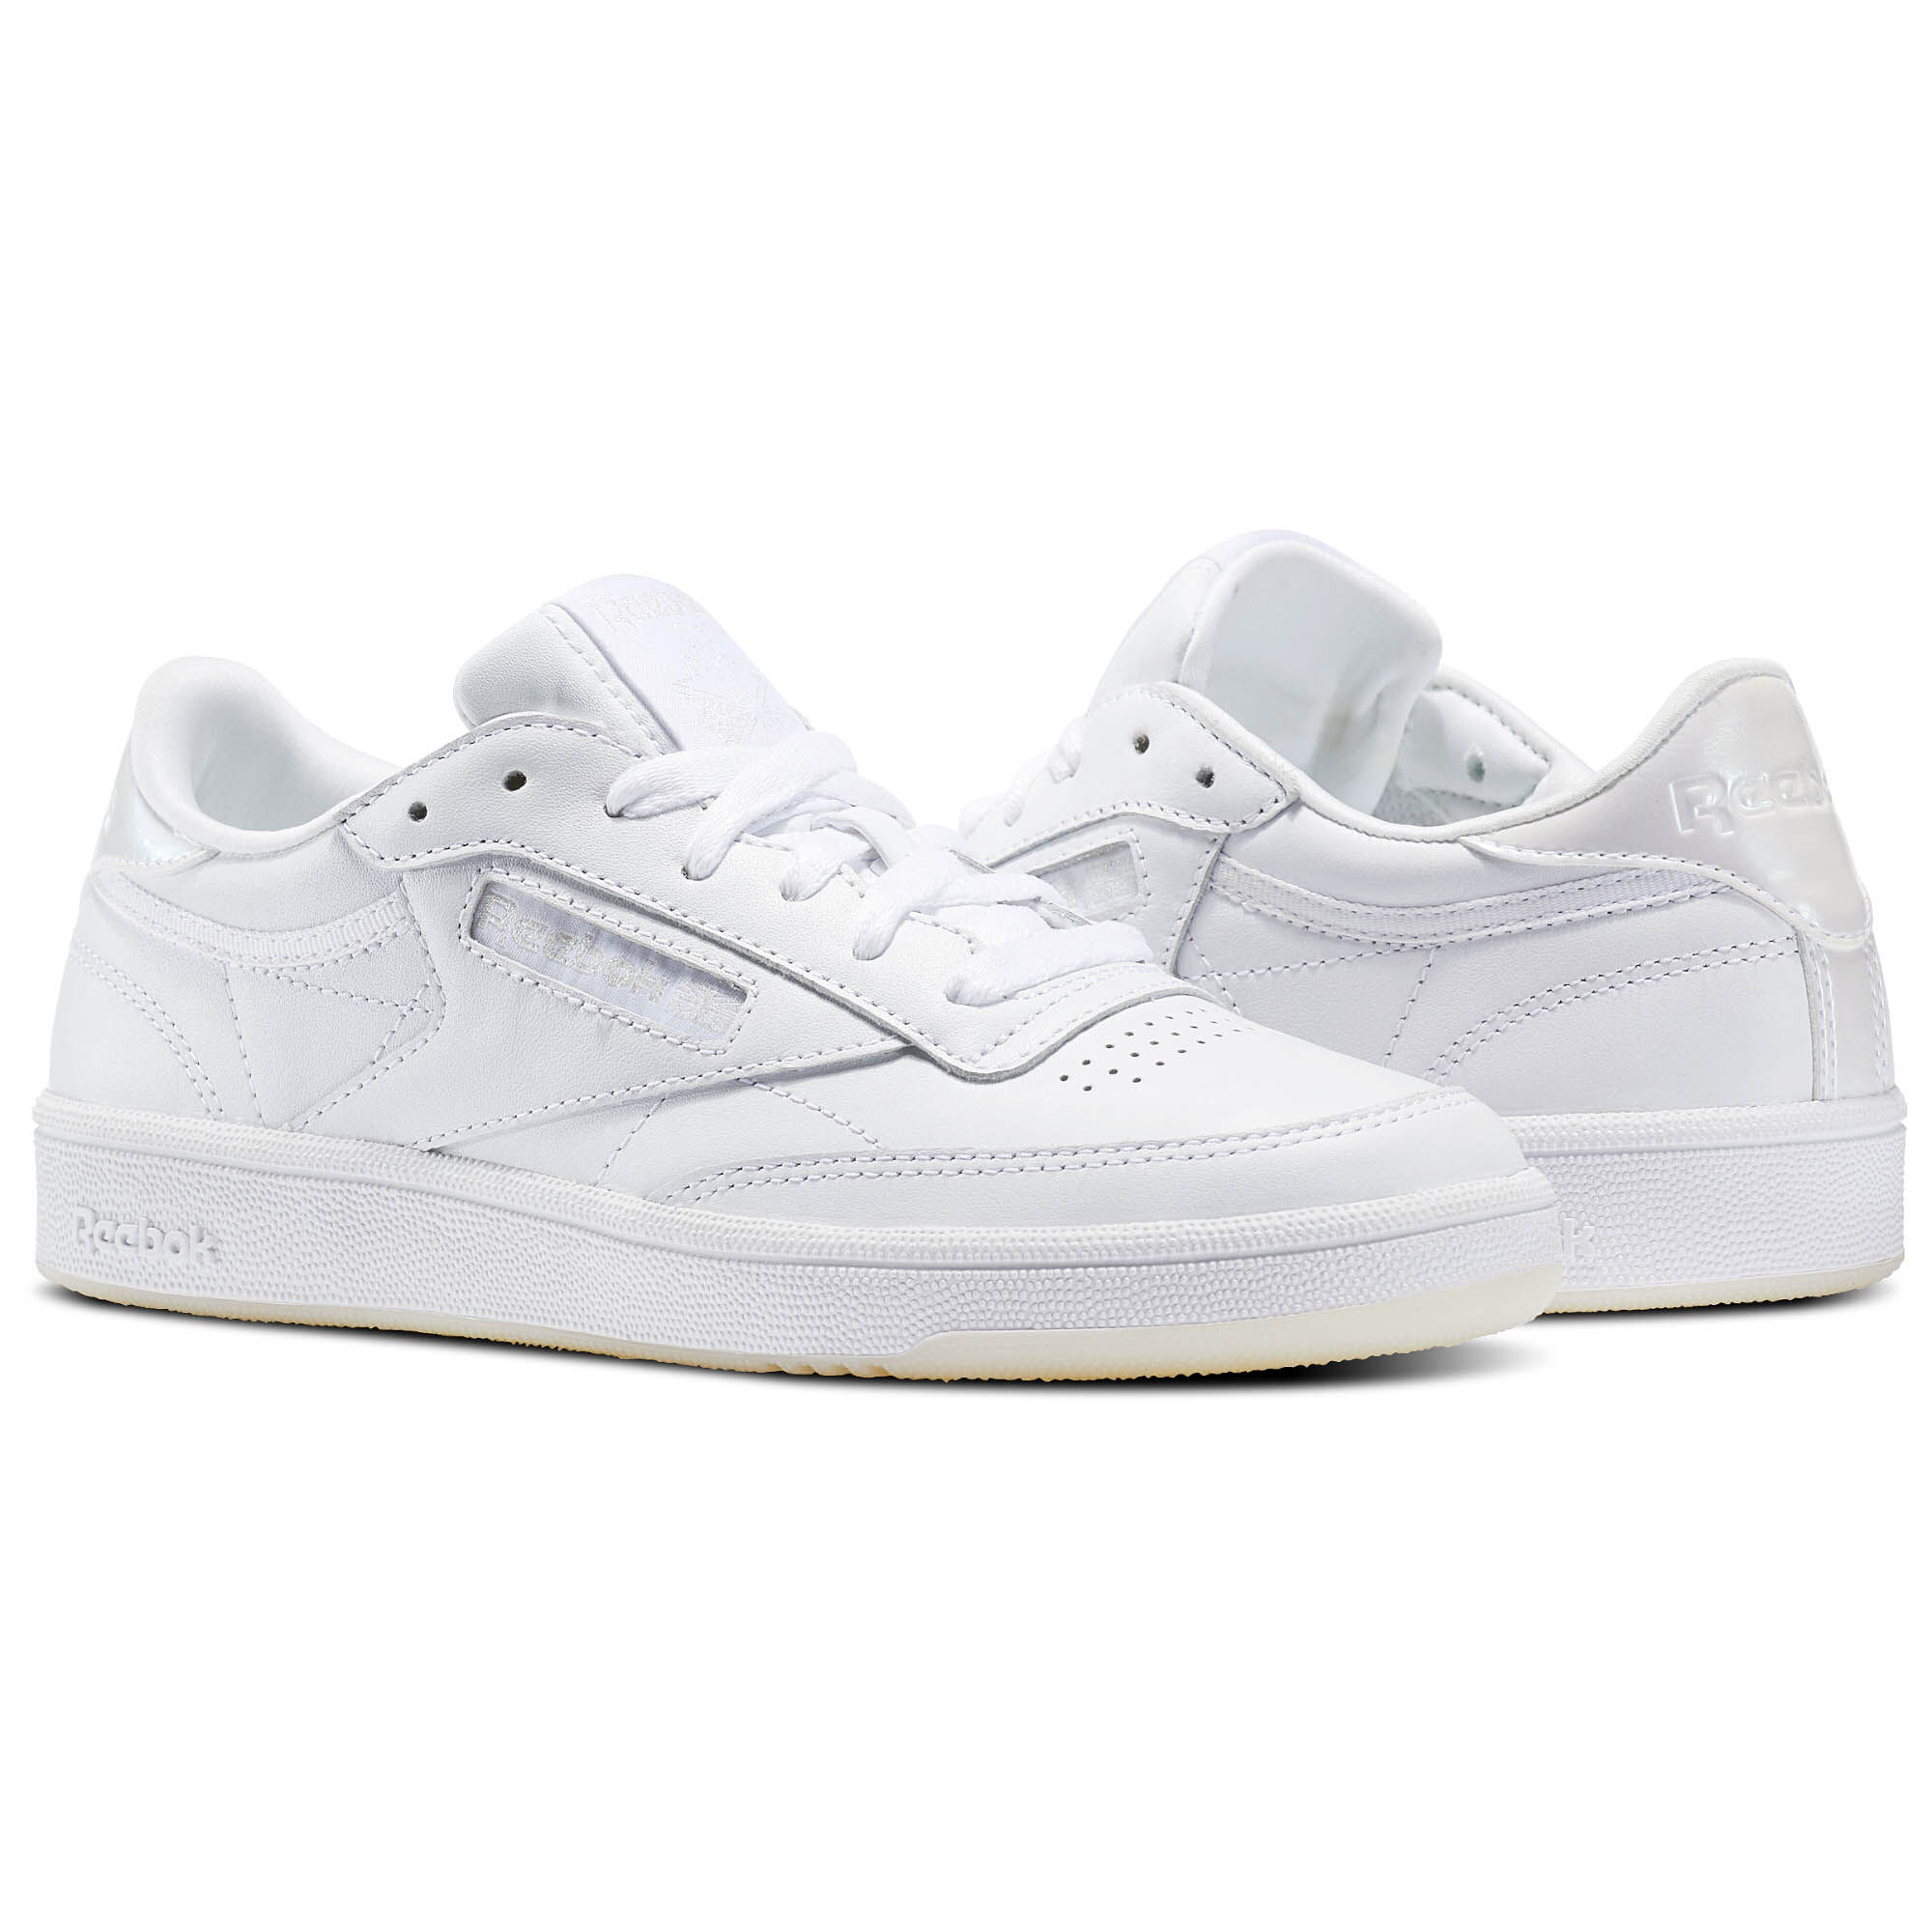 Reebok - Club C 85 Melted Metals Pearl-White/White/Ice BS5163